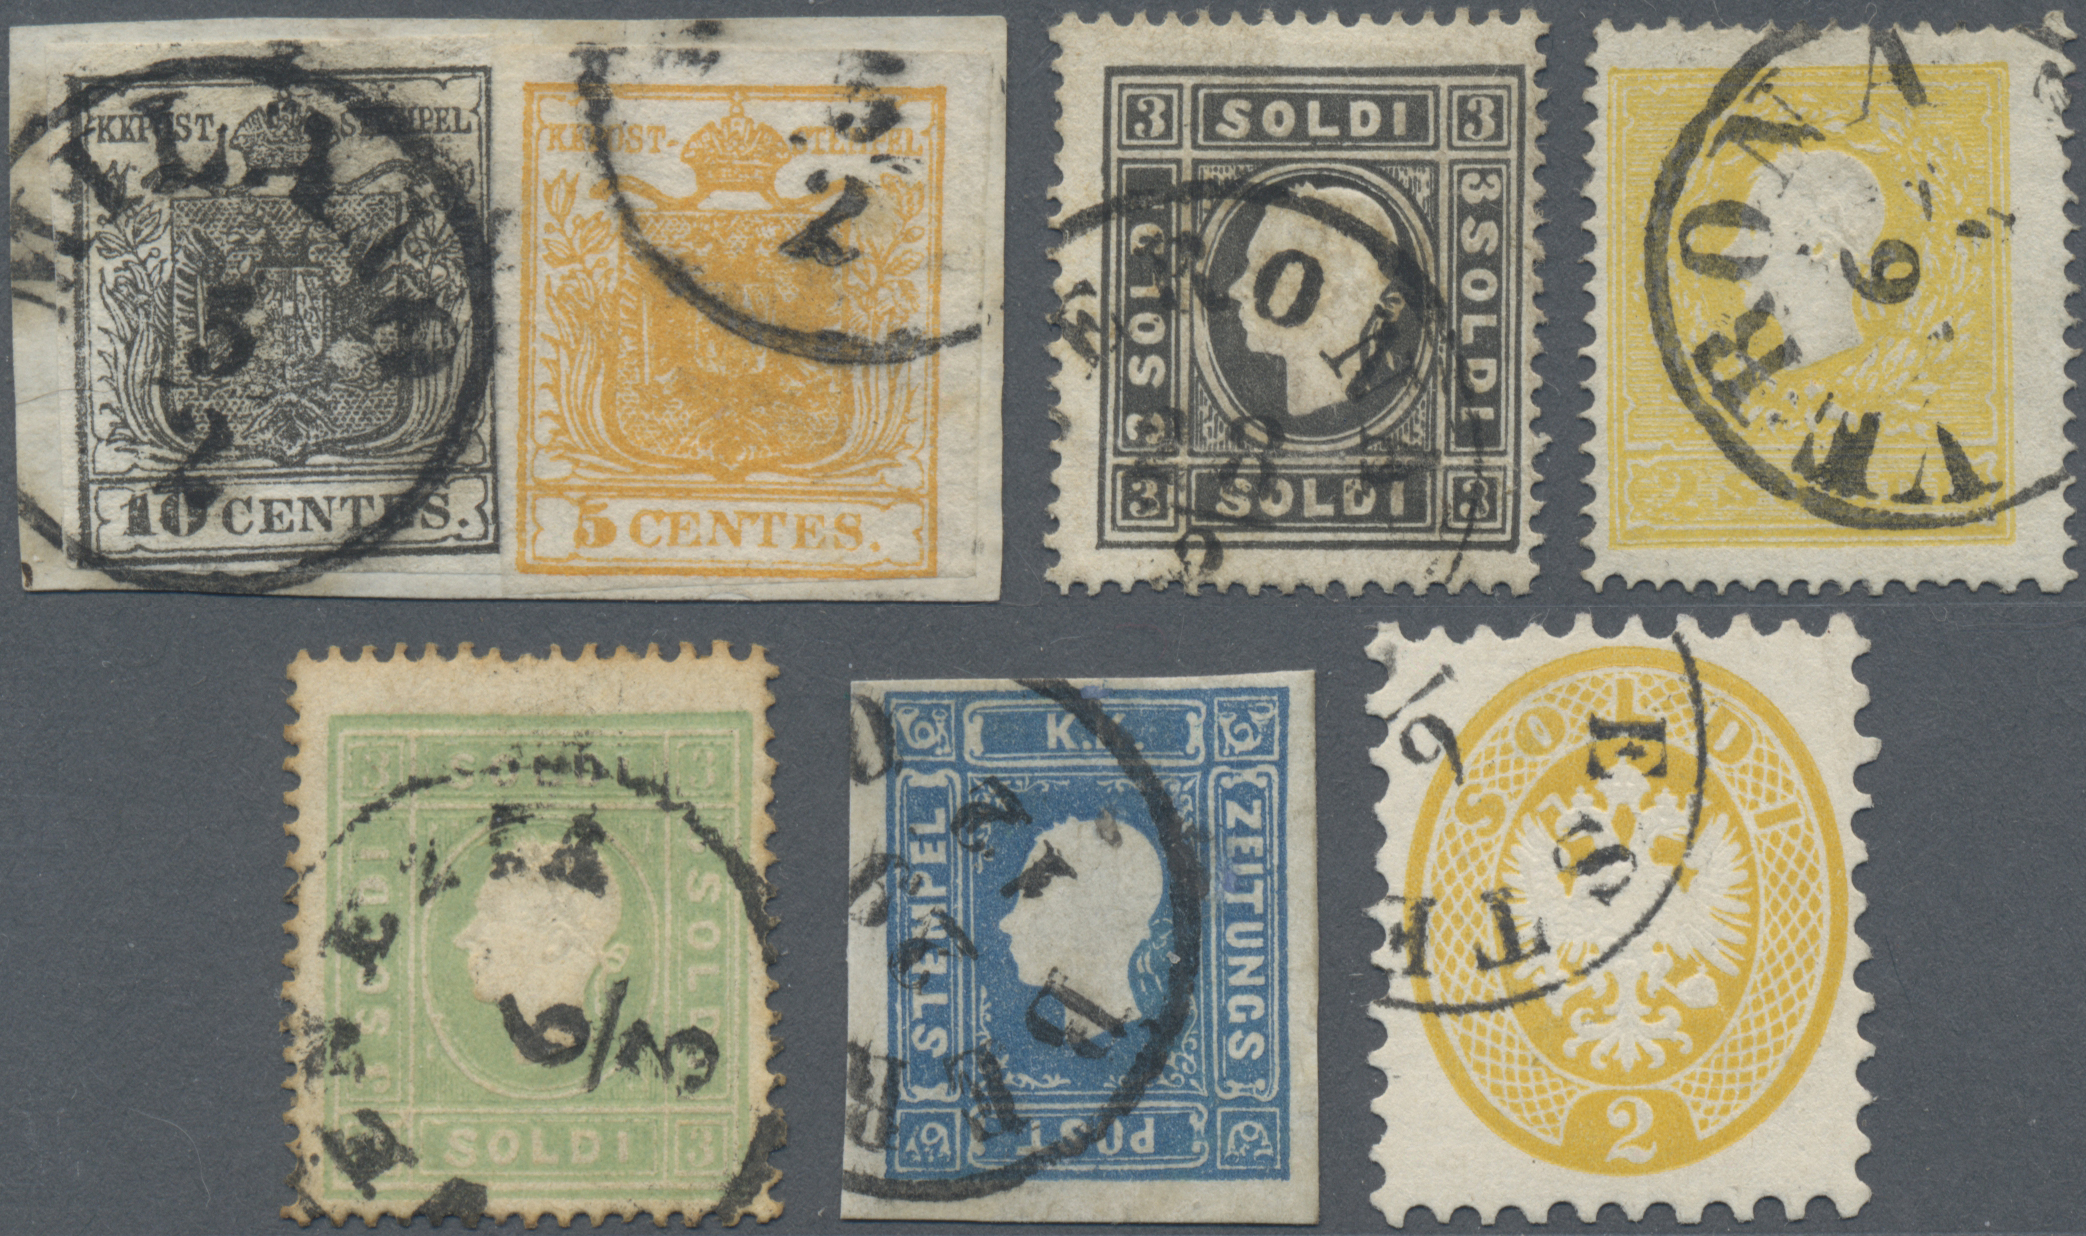 Lot 35015 - Österreich - Lombardei und Venetien  -  Auktionshaus Christoph Gärtner GmbH & Co. KG Sale #44 Collections Germany